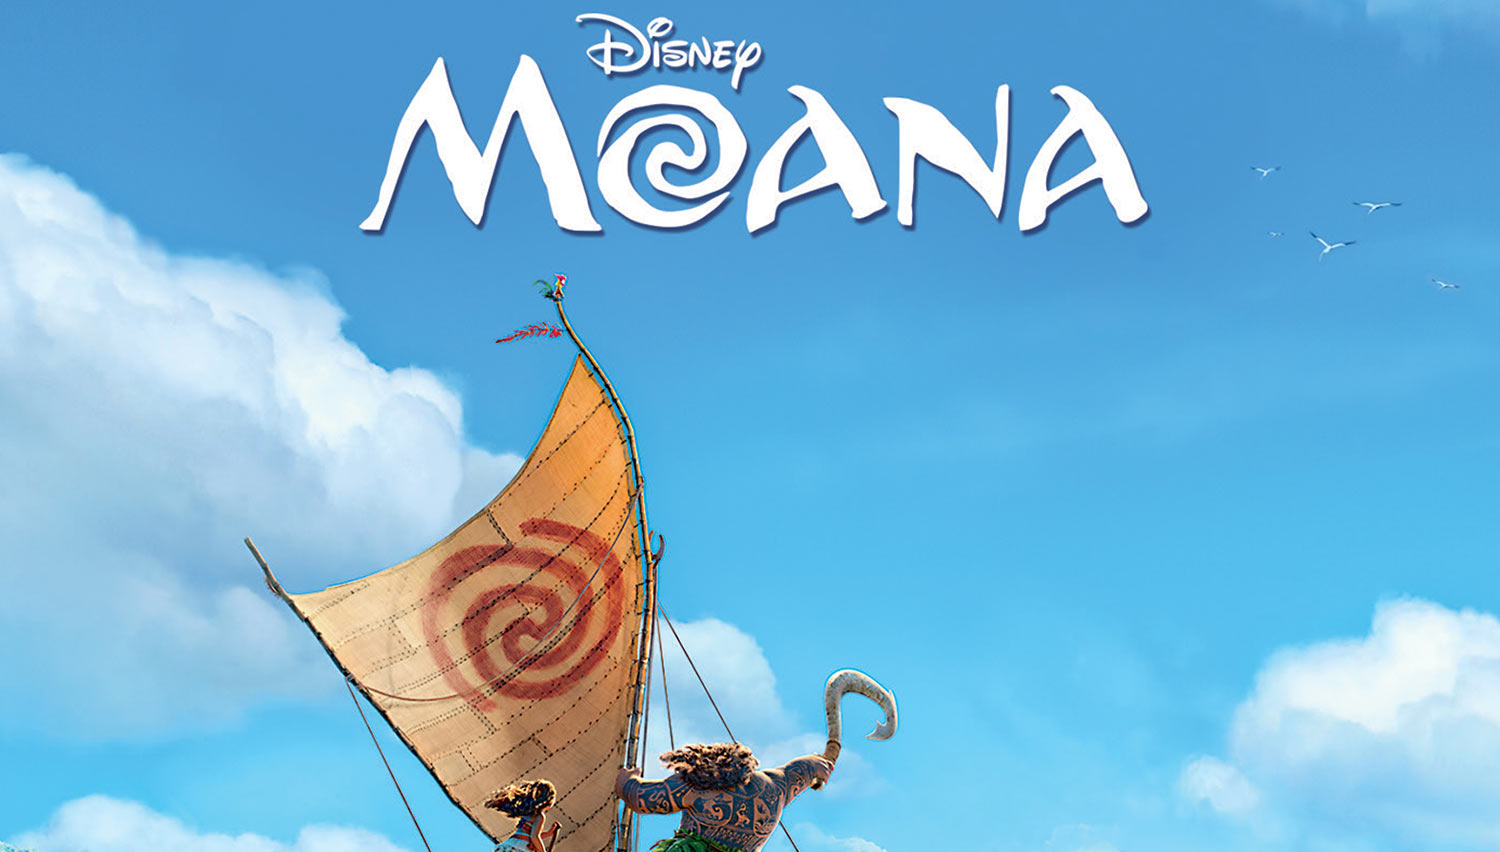 Disney's 'Moana' Soundtrack – Stream & Download! | Auli'i Cravalho, Dwayne  Johnson, First Listen, Lin-Manuel Miranda, Moana, Music : Just Jared